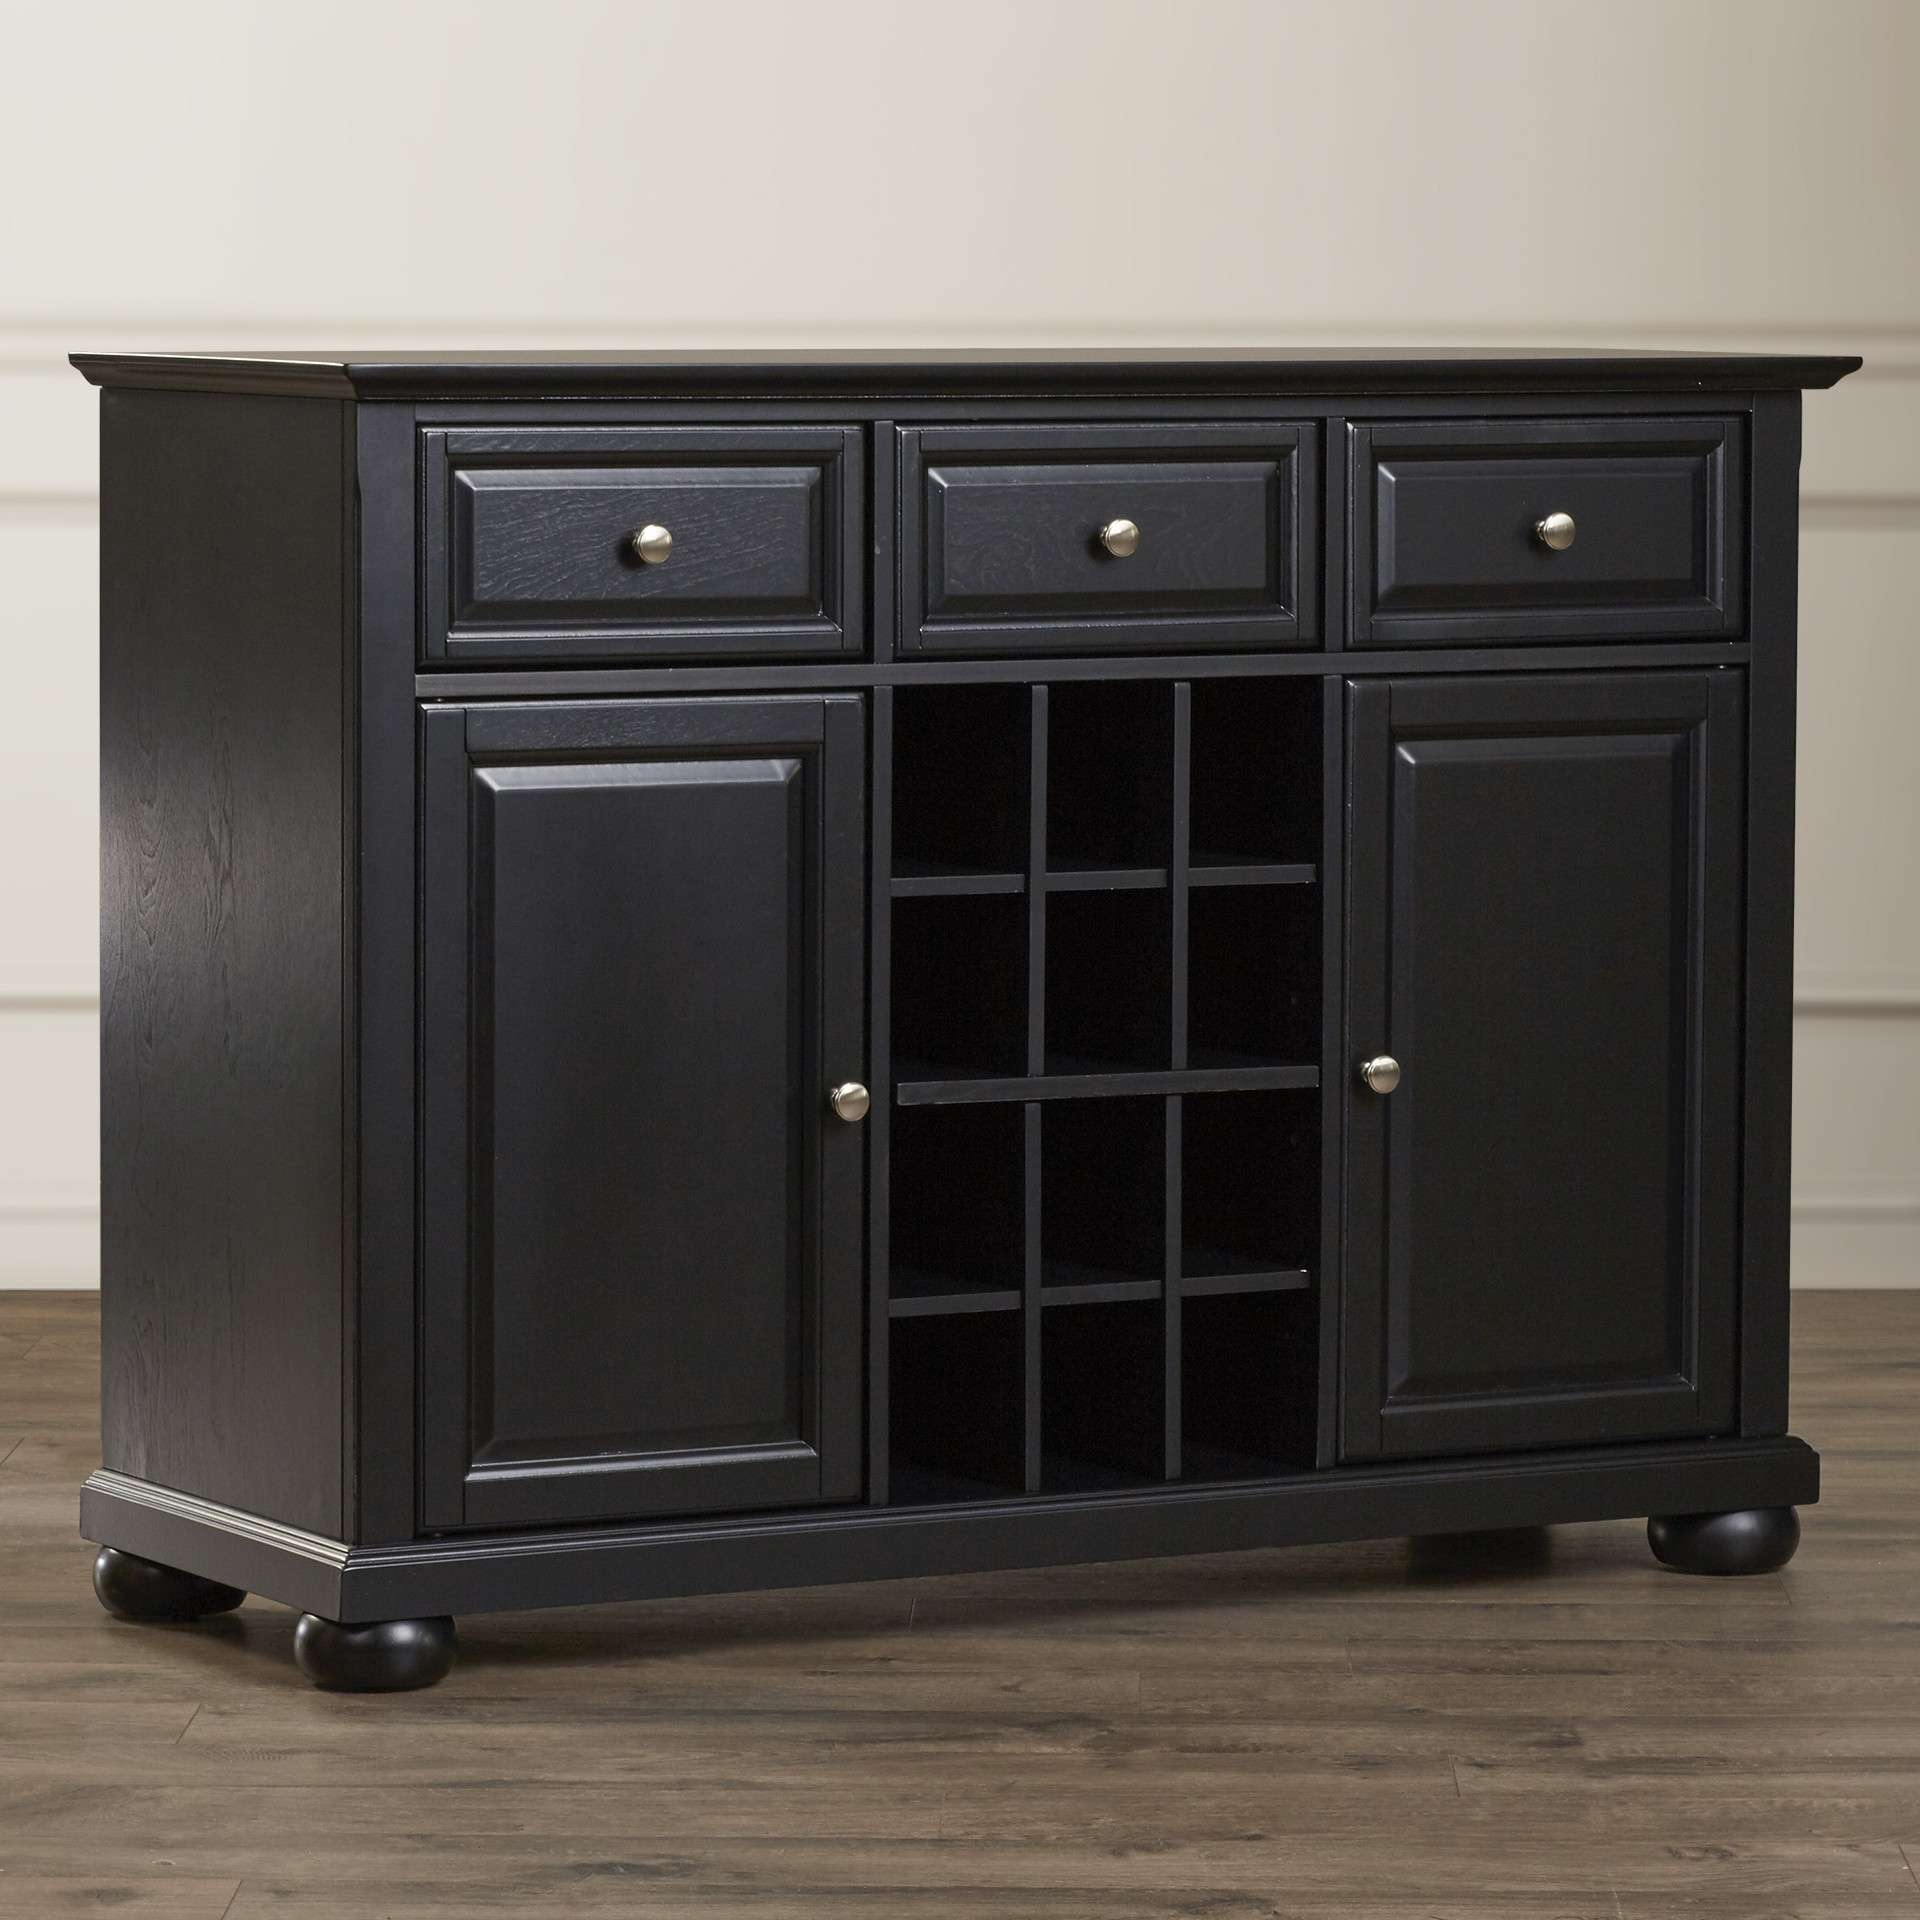 Unique Dining Room Buffets Sideboards – Bjdgjy Intended For Dining Room Buffets Sideboards (View 2 of 20)